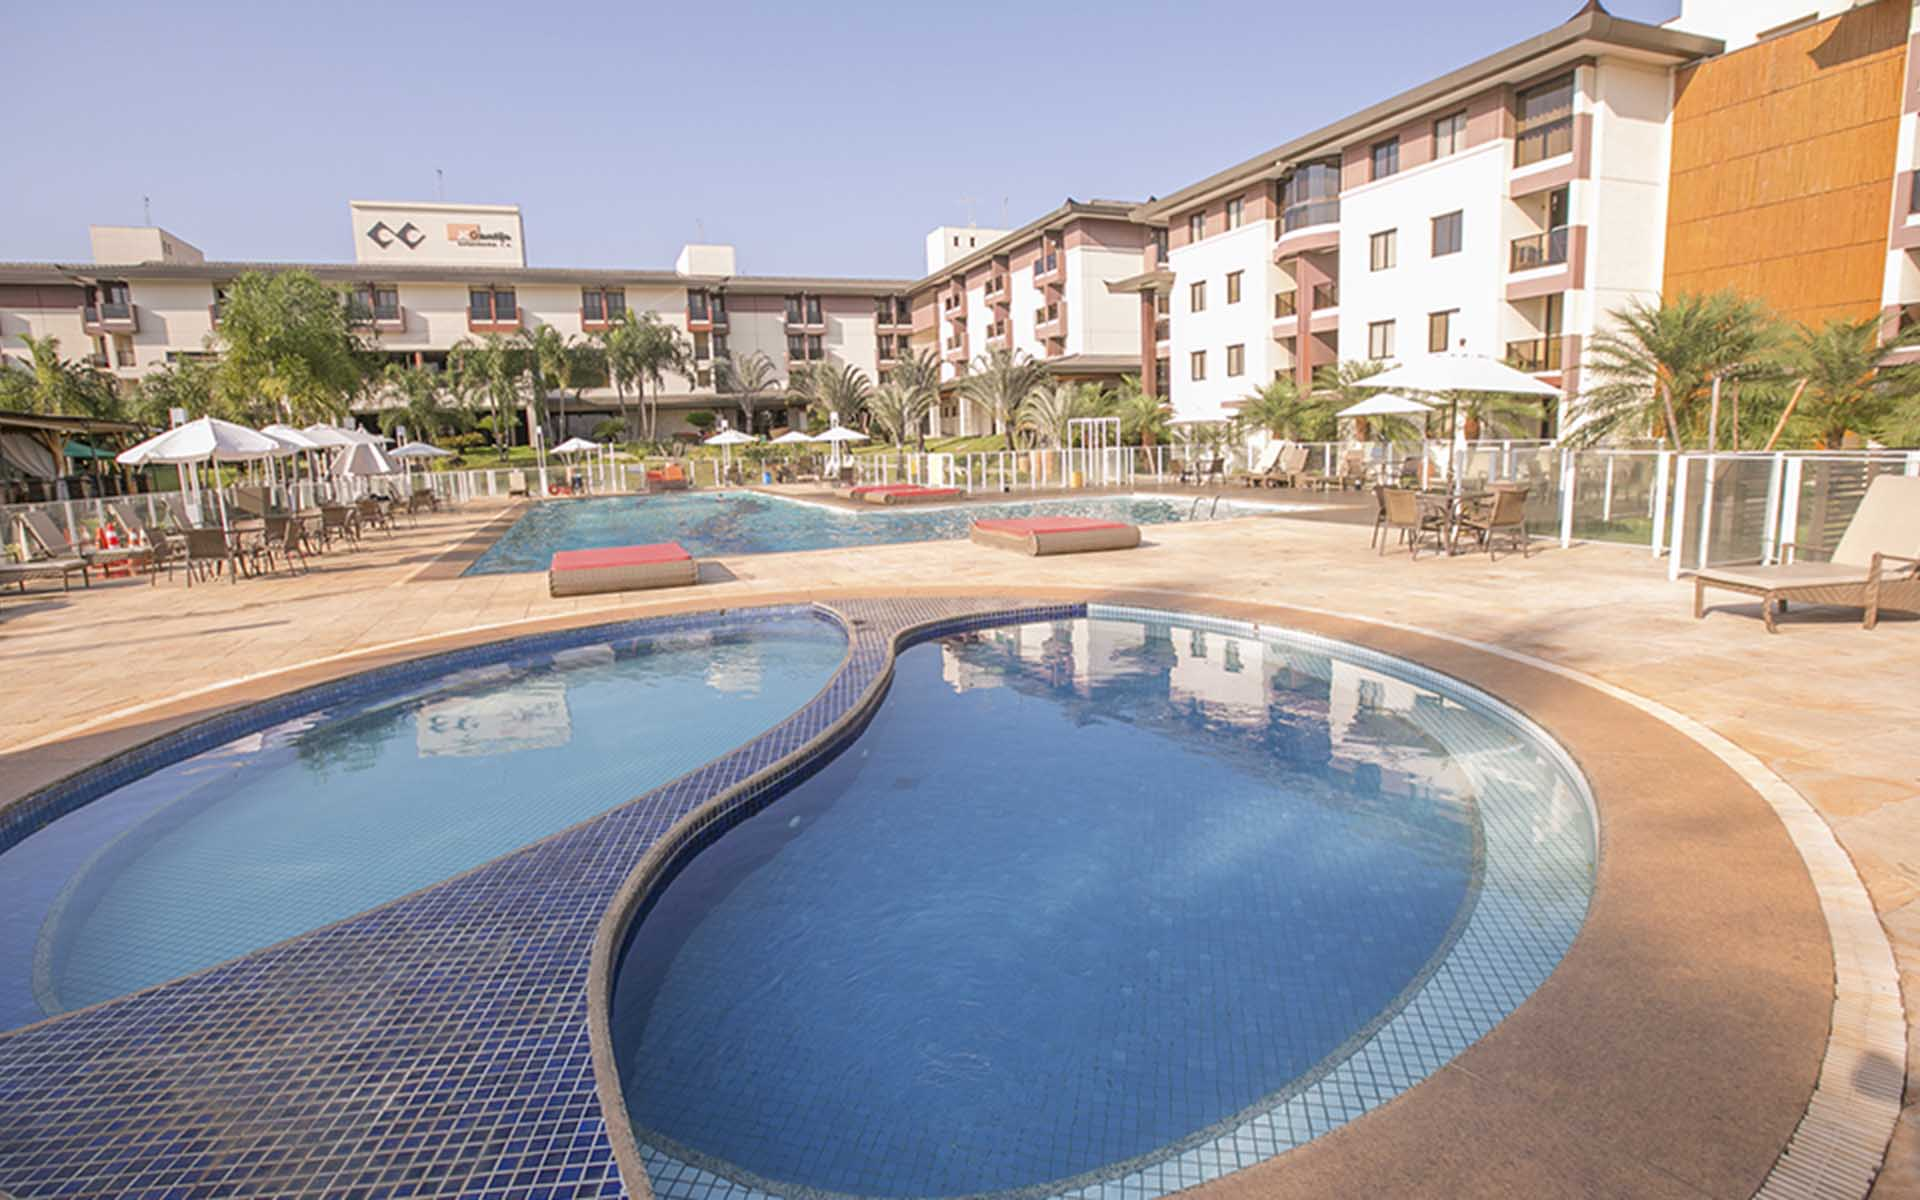 piscina do apart hotel flat em brasilia life resort hplus long stay